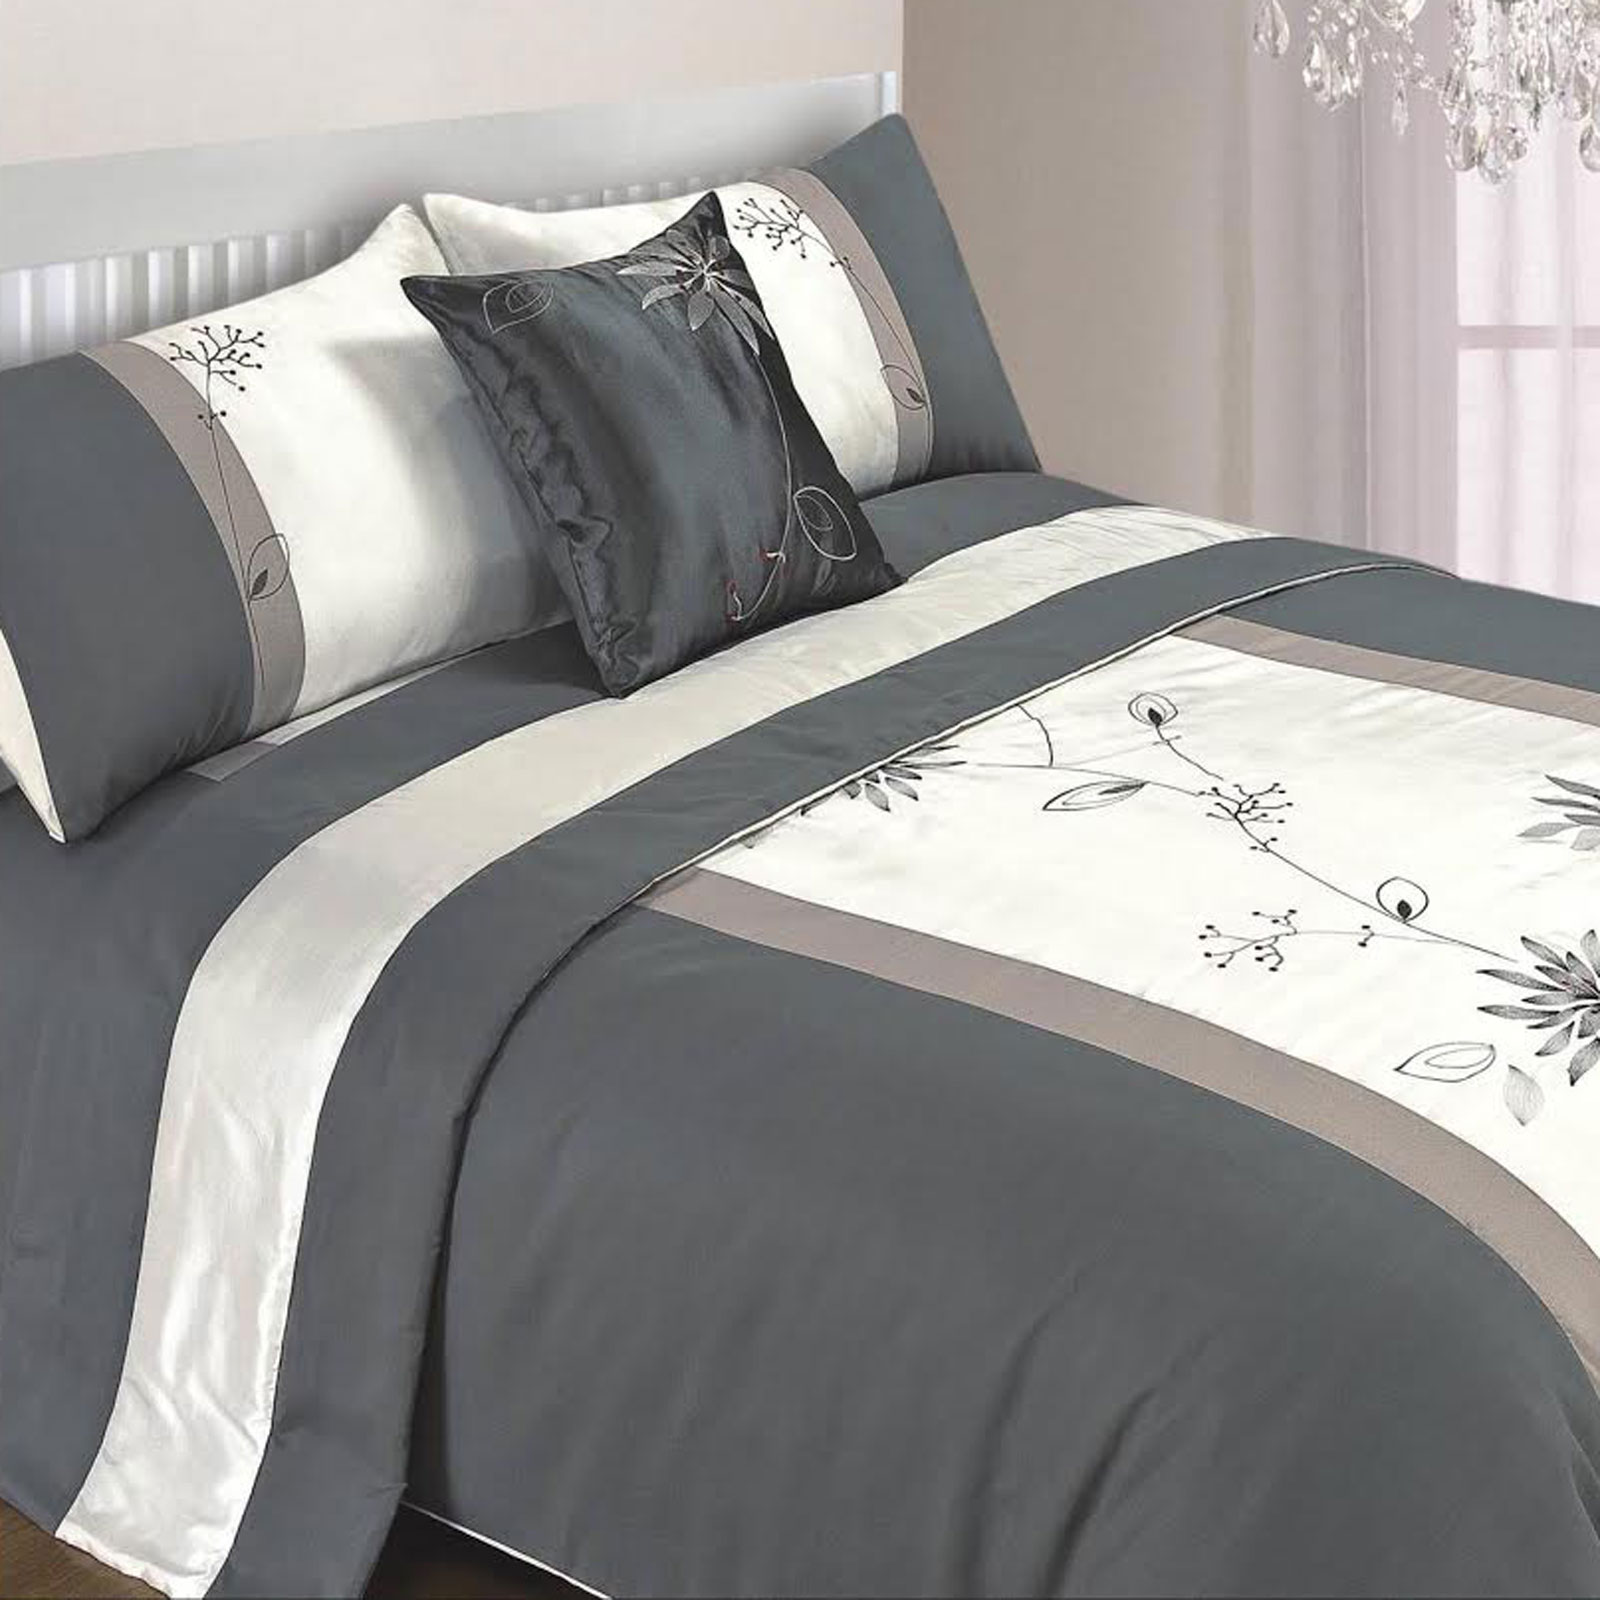 5Pc Bed In A Bag Embroidered Duvet Cover Faux Satin Silk